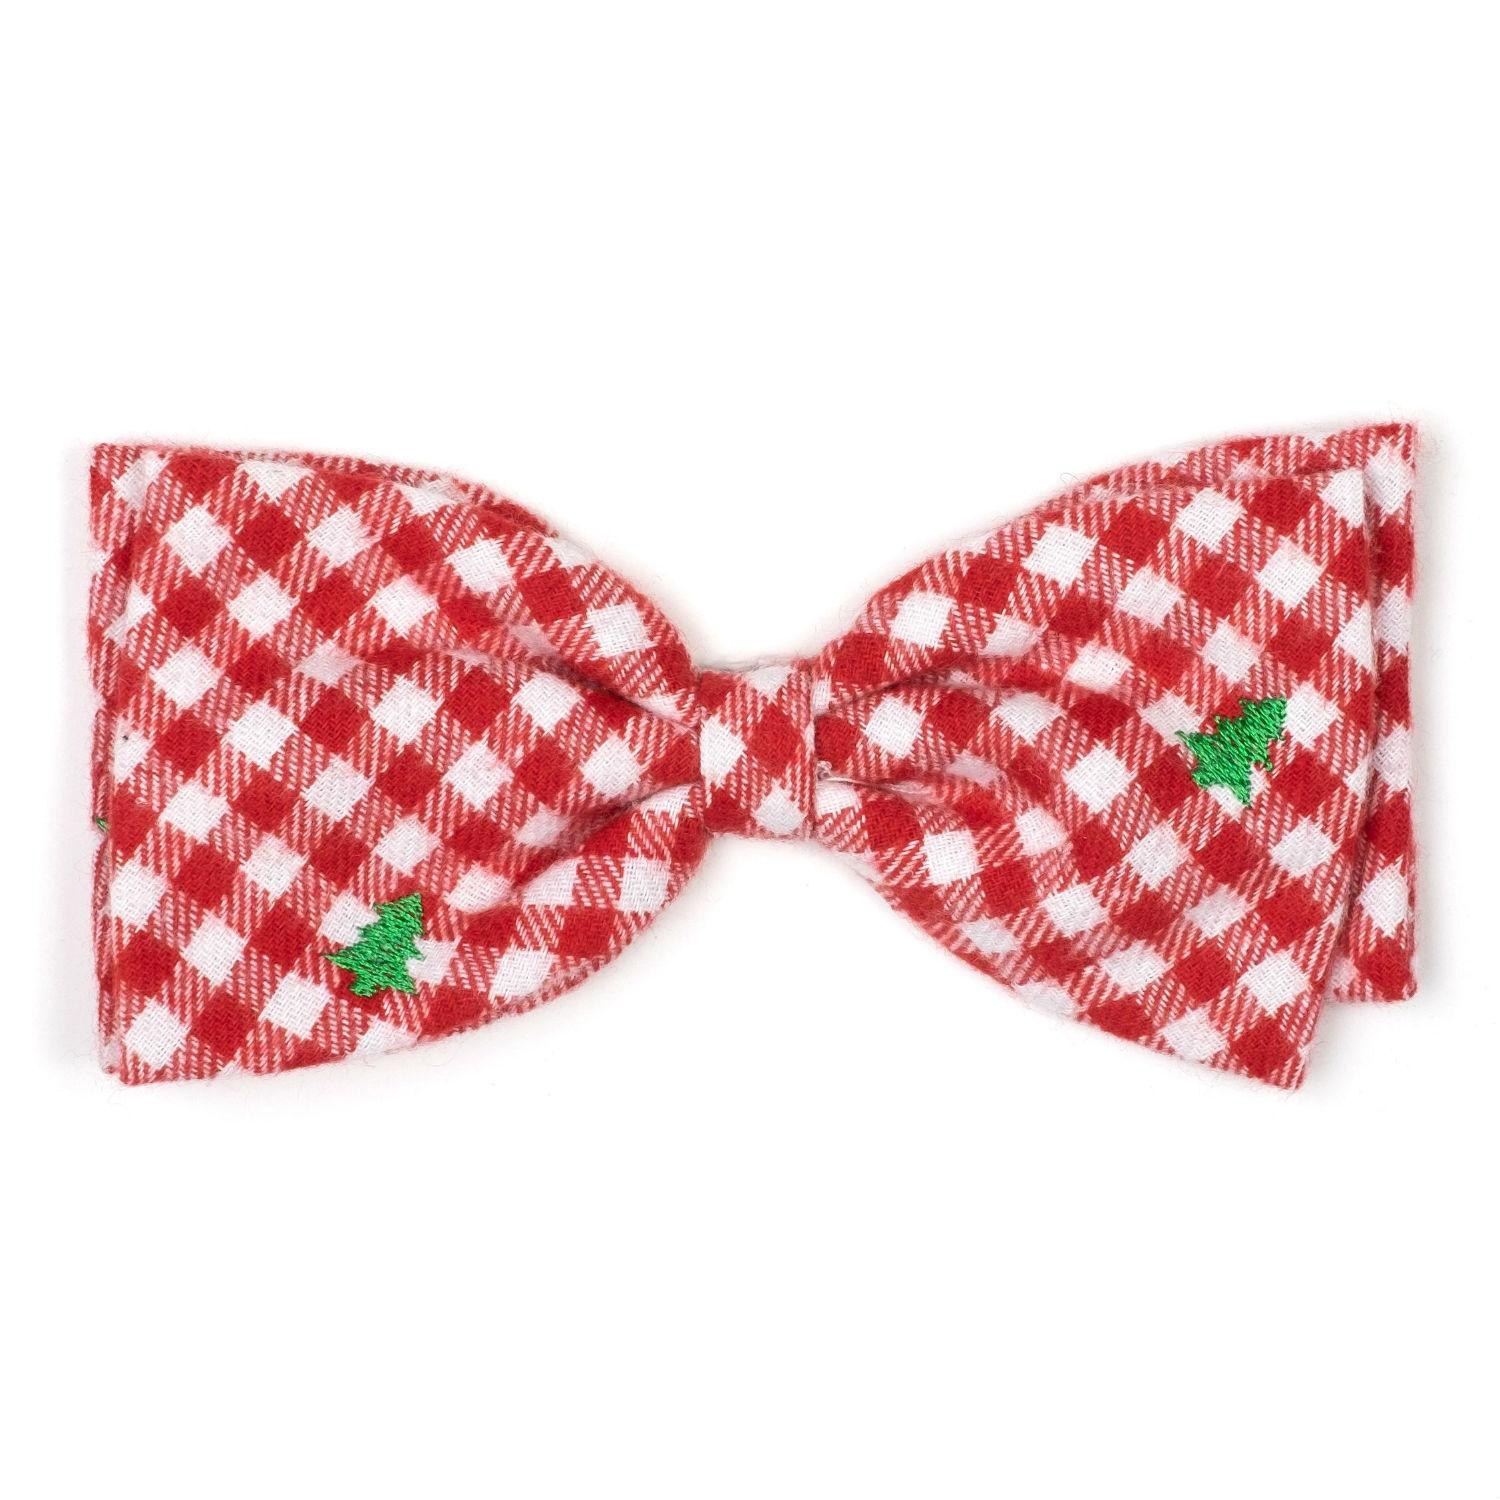 Worthy Dog Trees Flannel Check Dog and Cat Bow Tie Collar Attachment